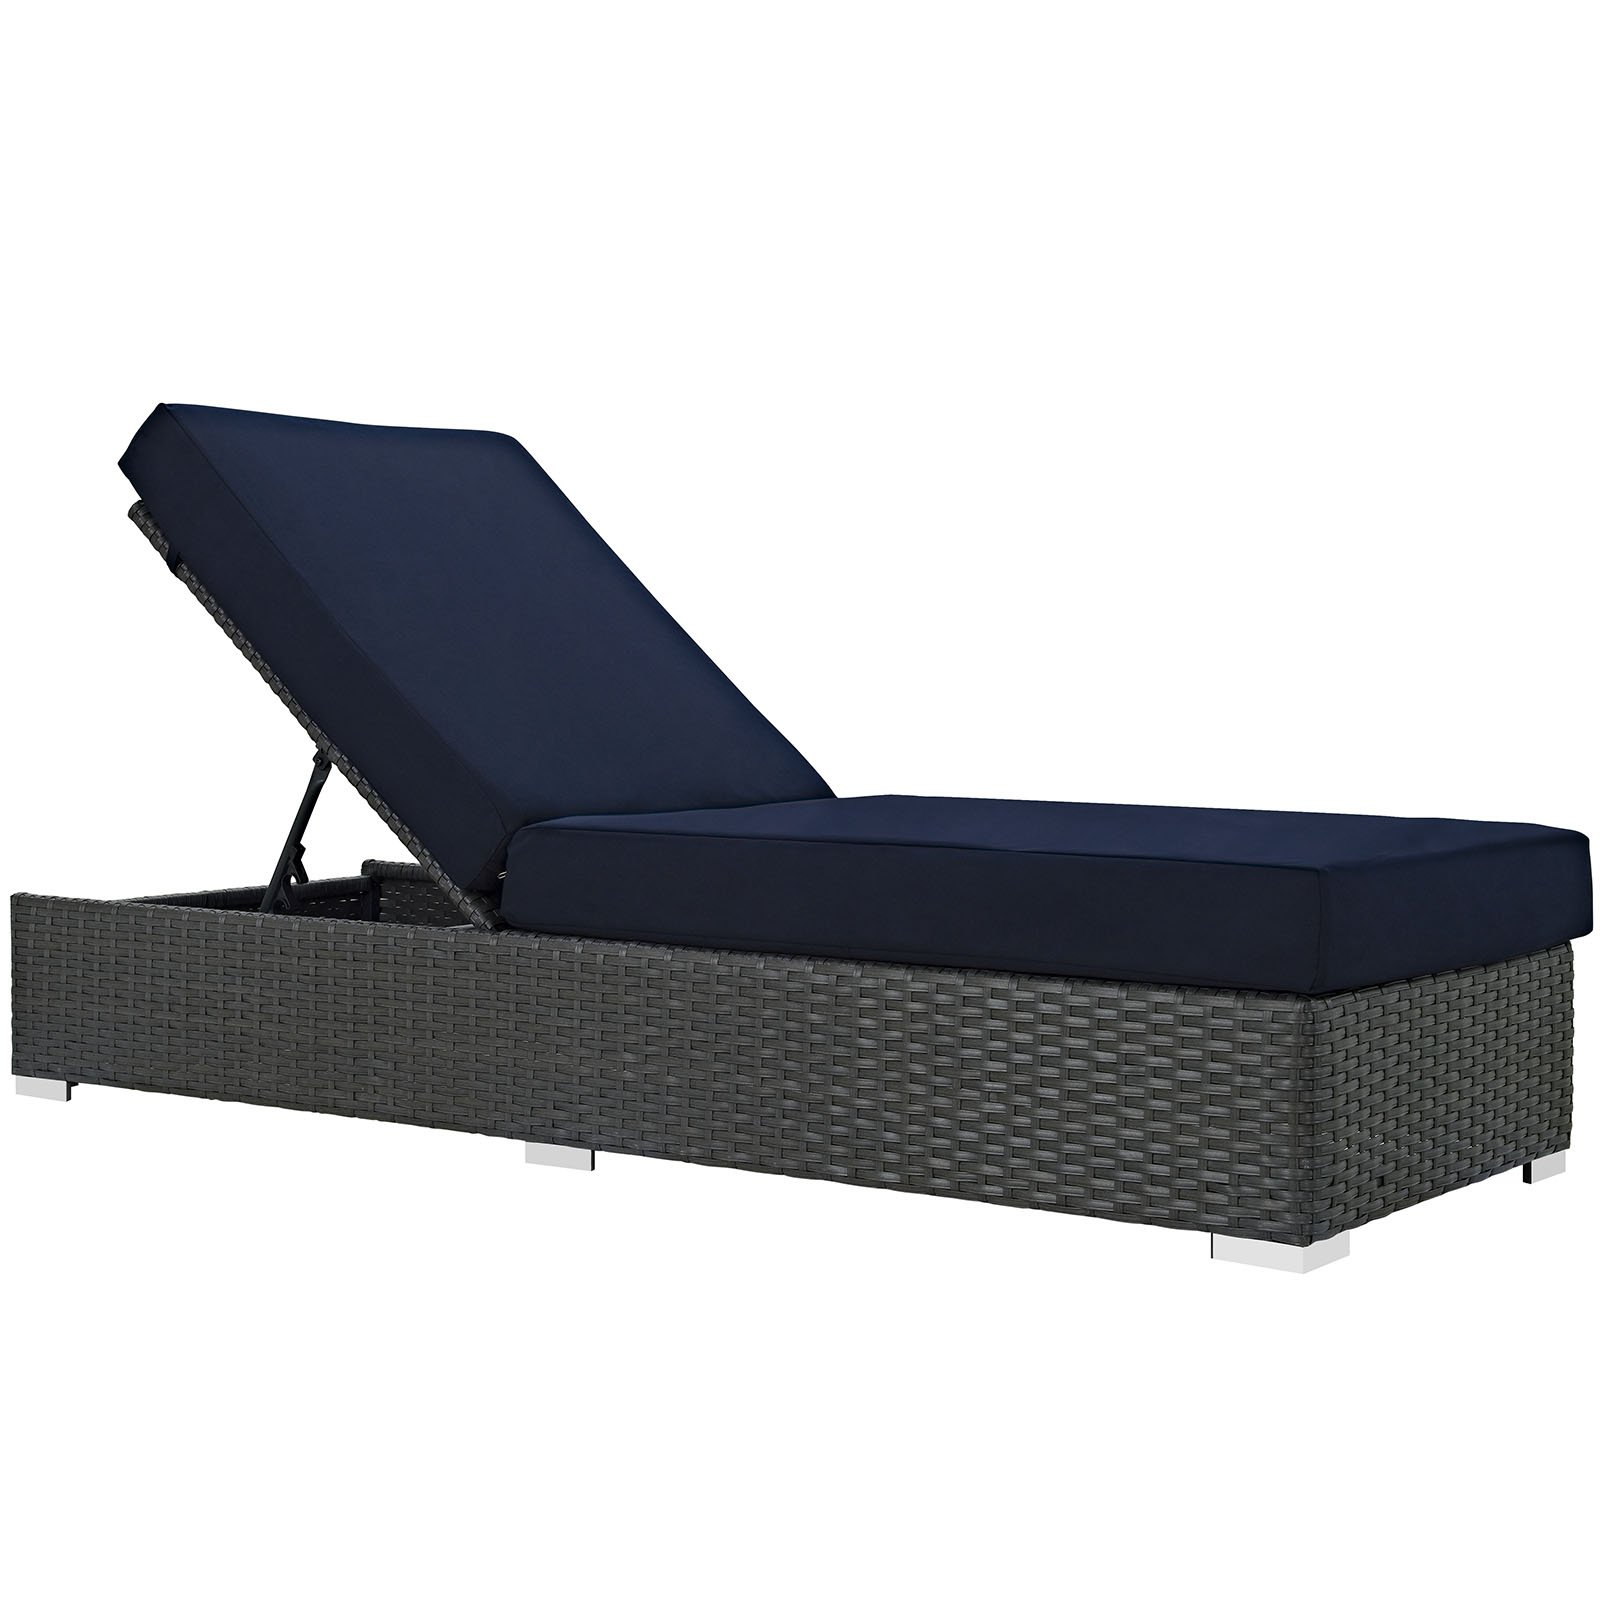 Modway Sojourn Outdoor Patio Sunbrella Chaise Lounge, Multiple Colors by Modway